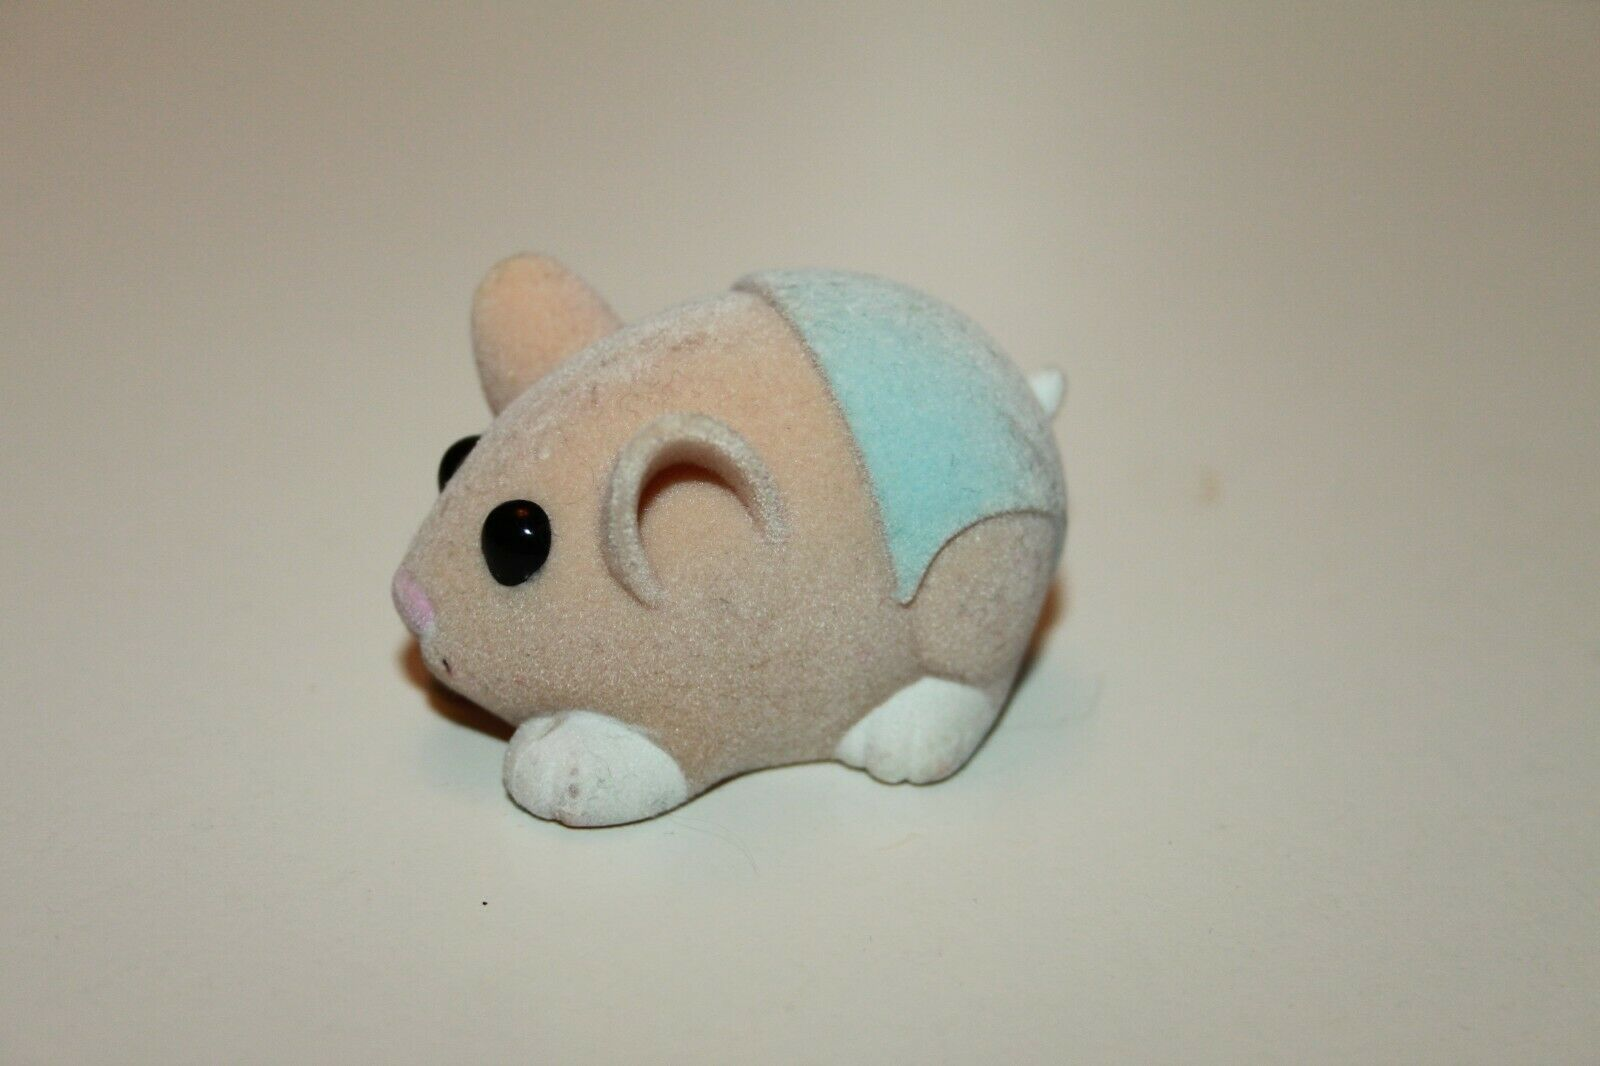 Details About 2 X Zhu Zhu Pets Hamster Babies Grey White Diaper Baby Cakes Orange Blue Peanut Baby Diapers Hamster Pets